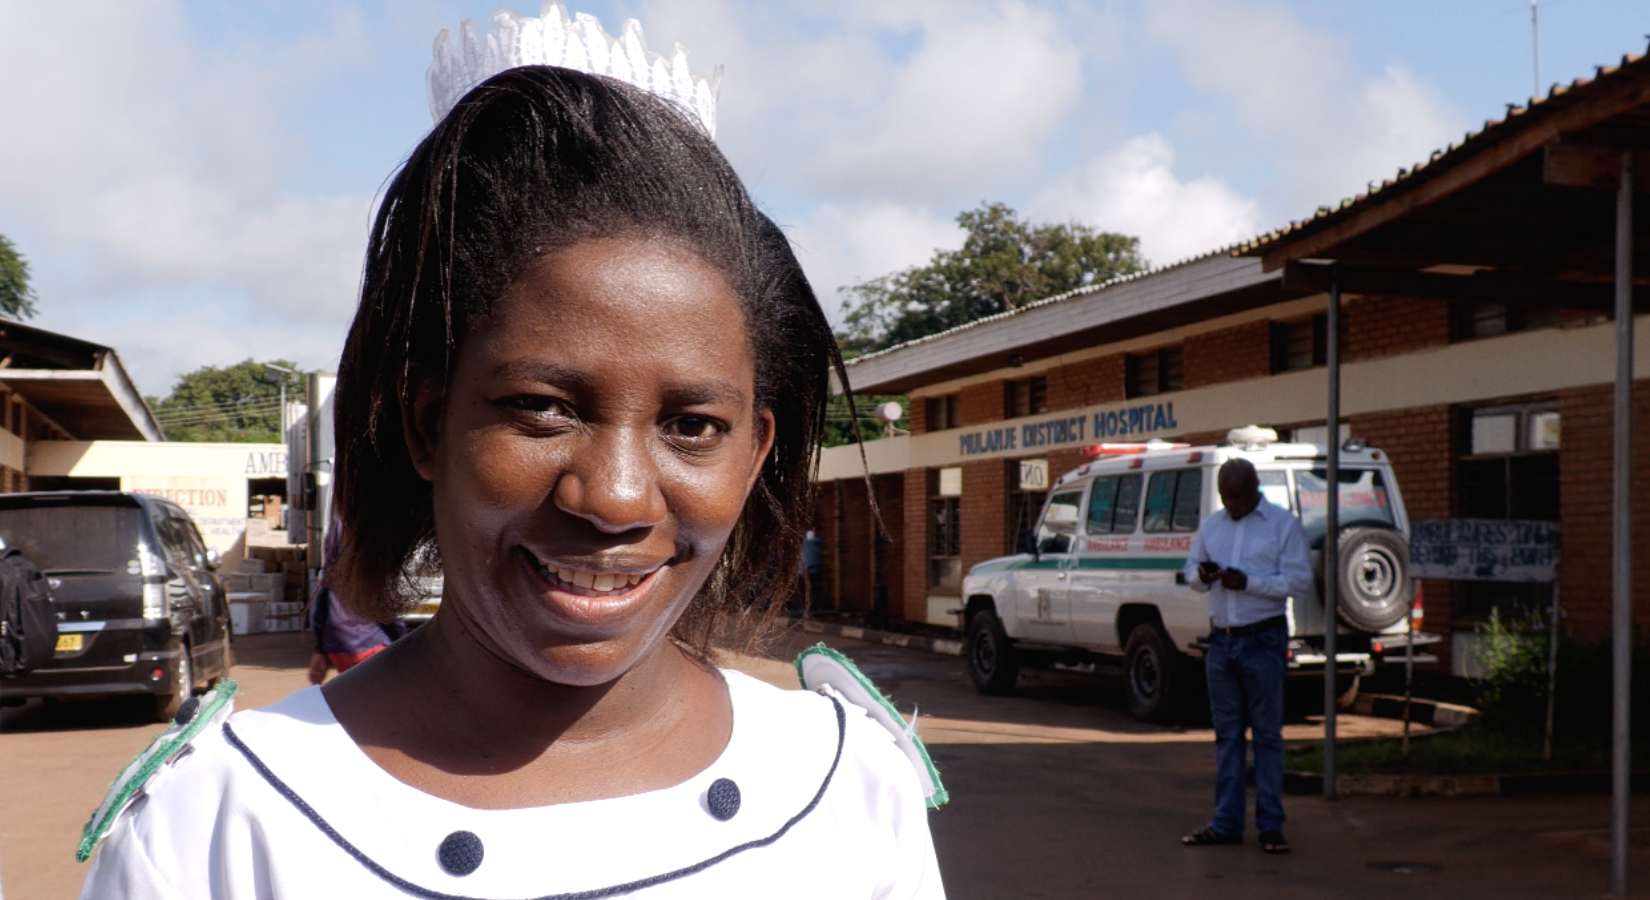 A GAIA Nursing Scholar Graduate is now the nurse in charge of the pediatric unit of Mulanje District Hospital. She was able to finish her nursing education with the addition of wrap around support from GAIA so that she could focus on her studies without the burden of financial hardship.